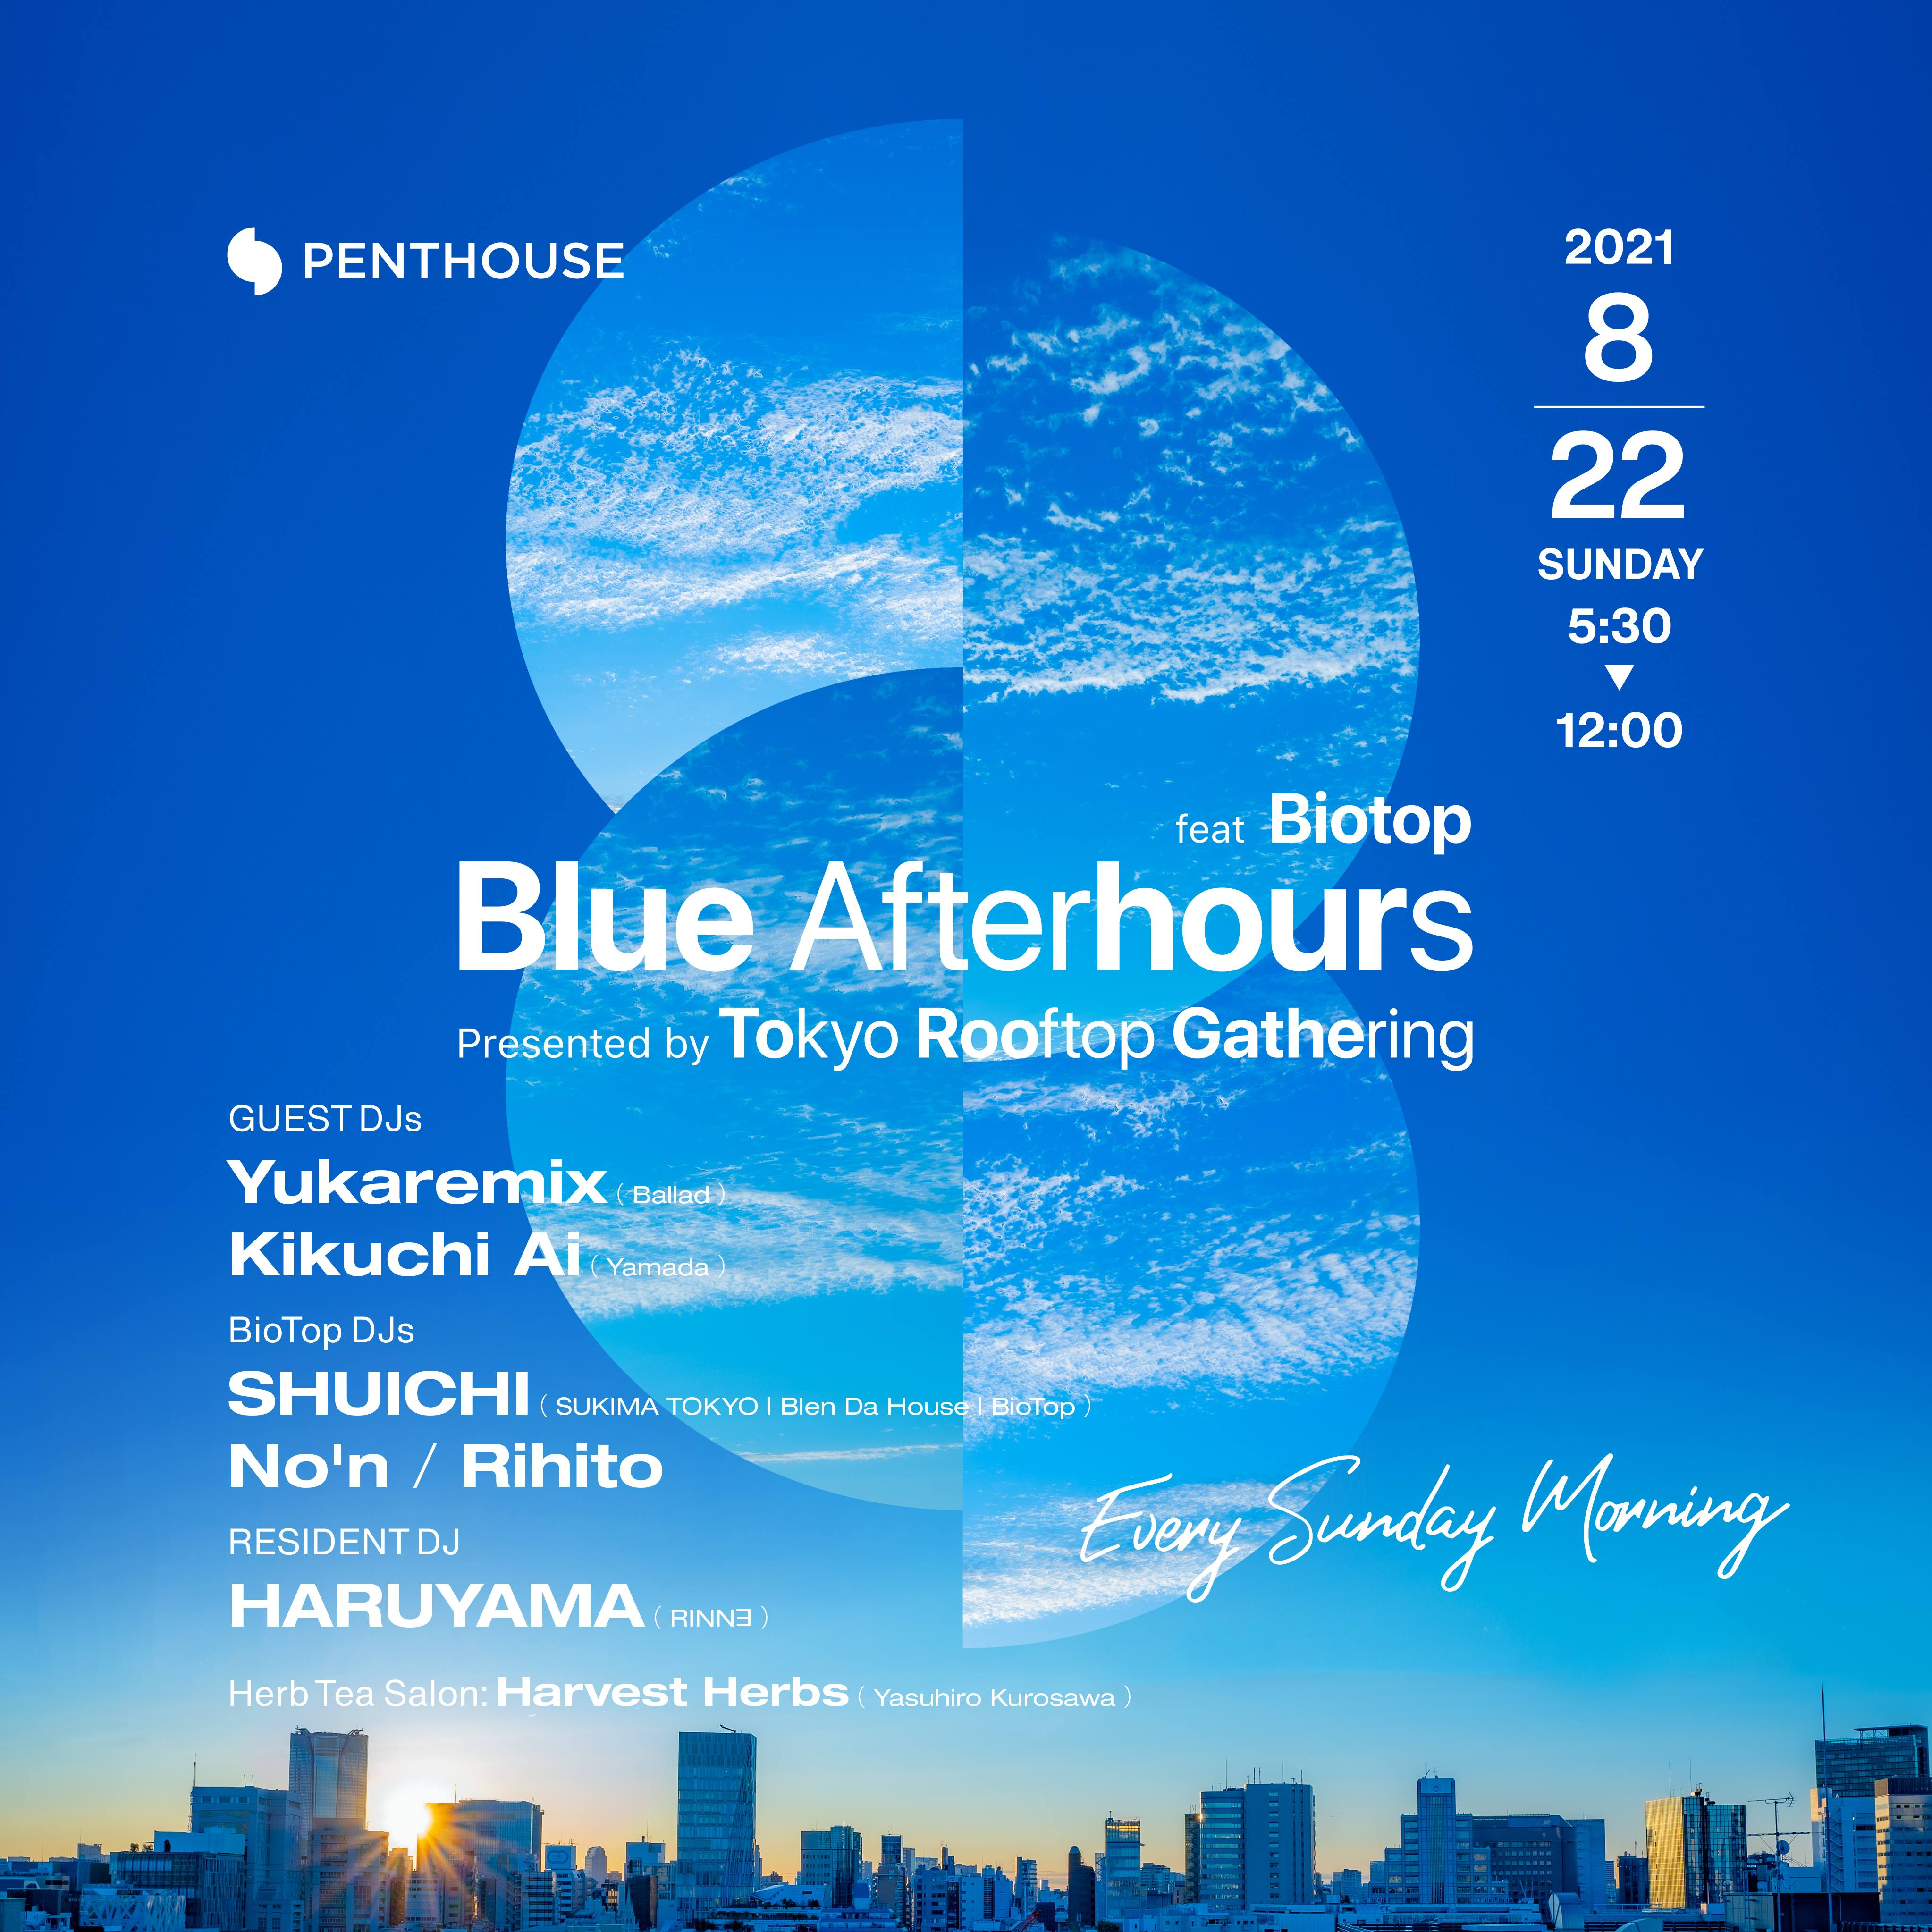 Blue Afterhours -Presented by Tokyo Rooftop Gathering- feat Biotop